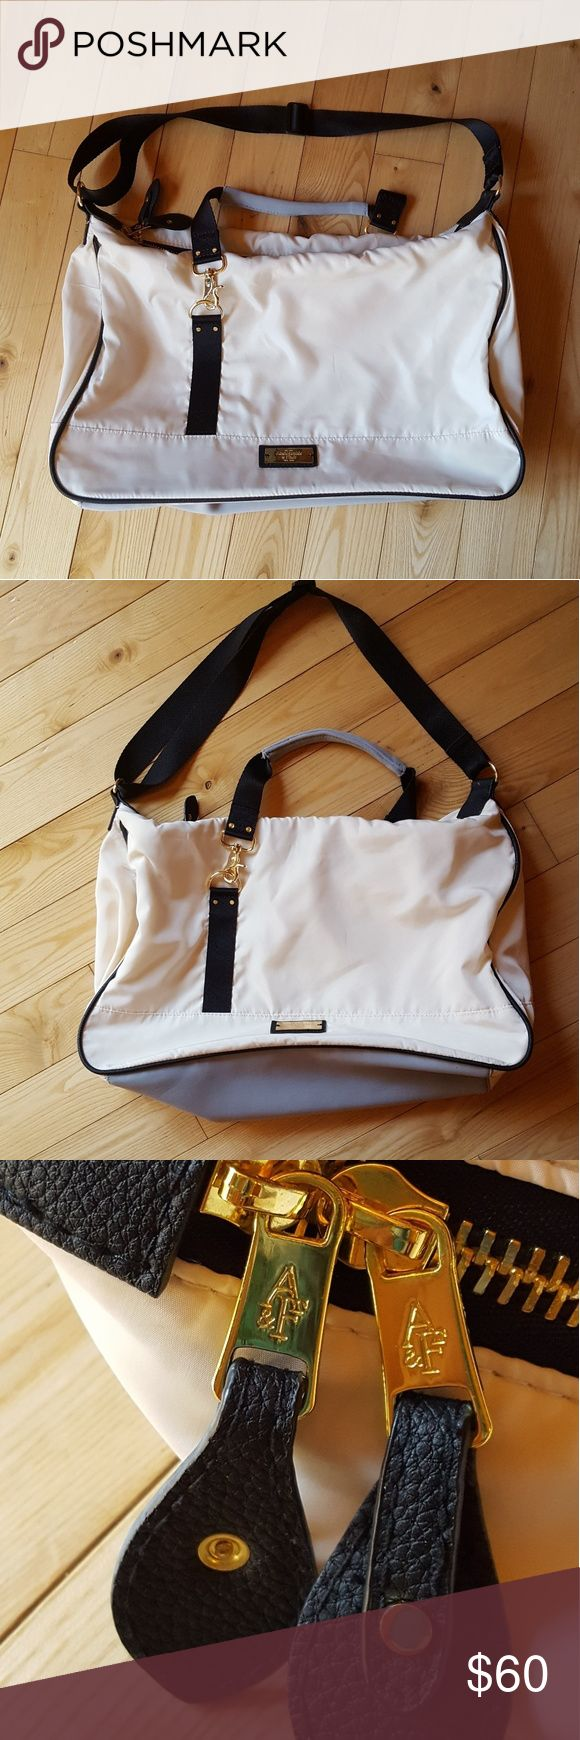 """New Abercrombie and Fitch Bag Nice! BOGO SALE NWOT. Very nicely made bag. Adjustable strap, and the hand strap can be taken off. Zipper in excellent condition. Laying flat the bag is 19"""" a crossed, and is about 14"""" tall. Nice roomy bag. Cream in color. Abercrombie & Fitch Bags"""